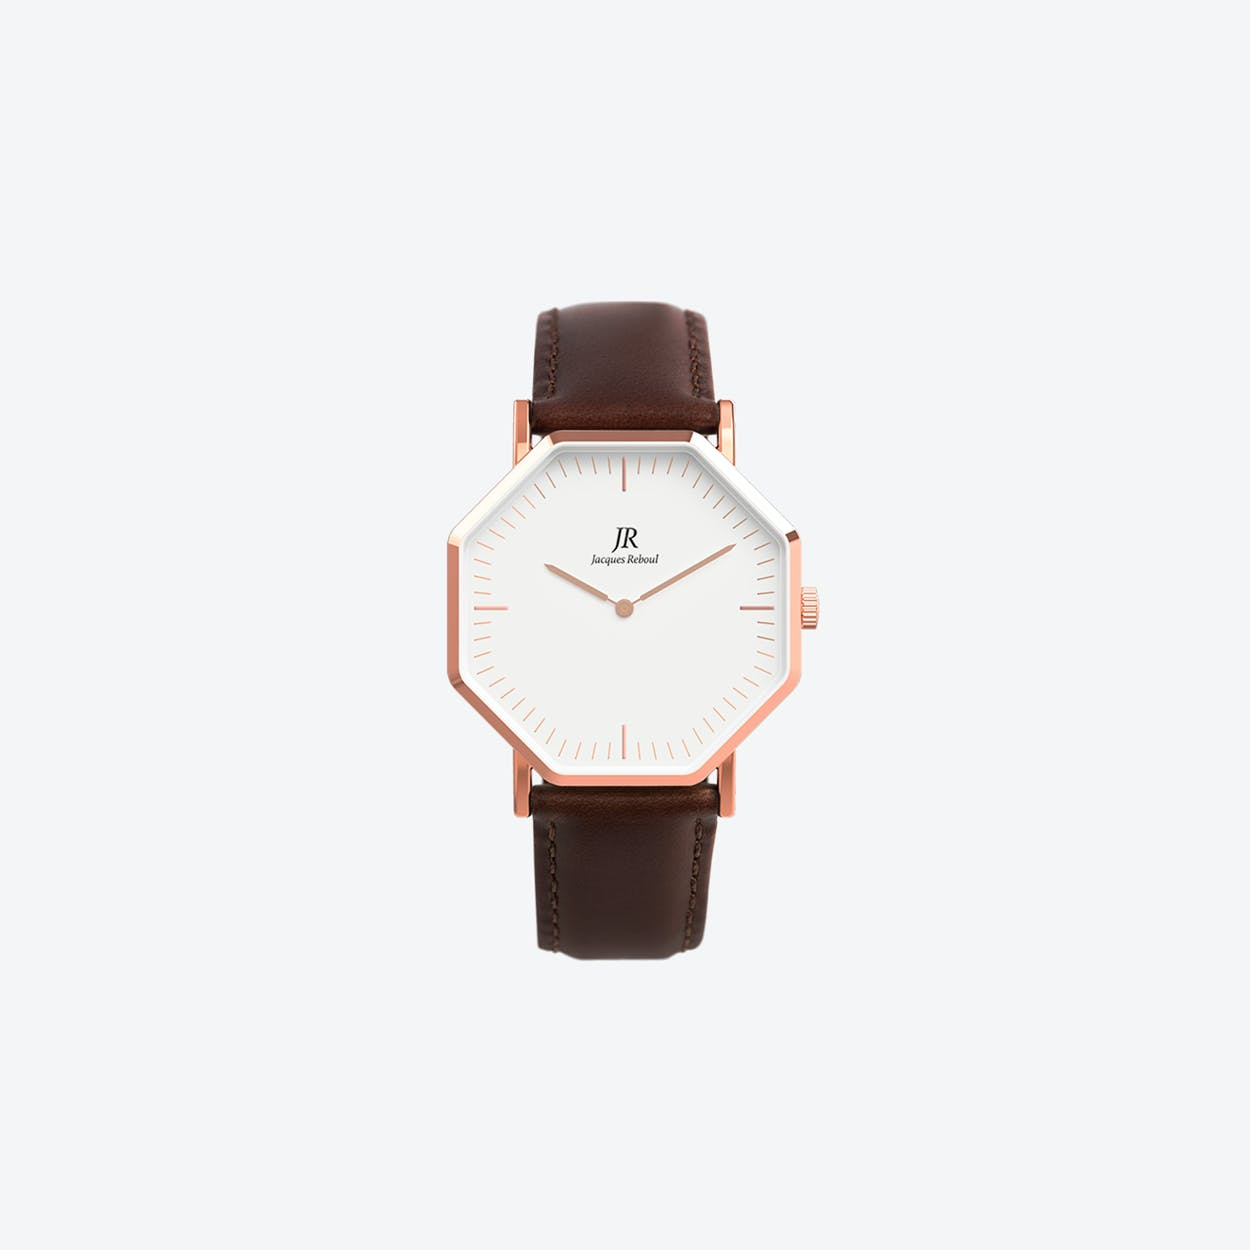 Lumiere Intense Classic Rose Gold Hexagonal Watch with Dk Brown Leather Strap 36mm